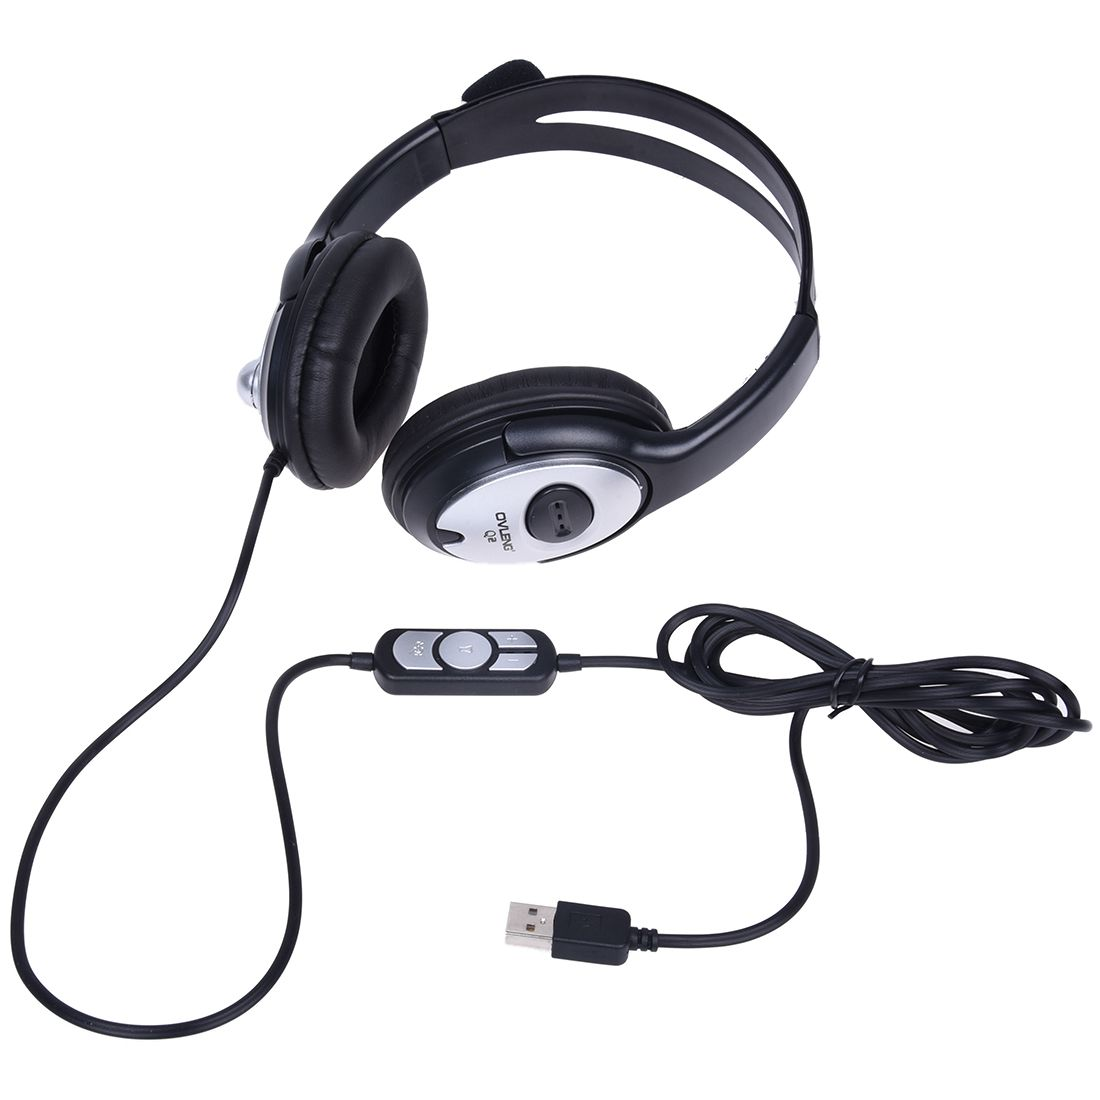 HOT-USB Stereo Headphone Earphone with MIC for Gaming Console Surround Sound PC Headset huhd 7 1 surround sound stereo headset 2 4ghz optical wireless gaming headset headphone for ps4 3 xbox 360 one pc tv earphones